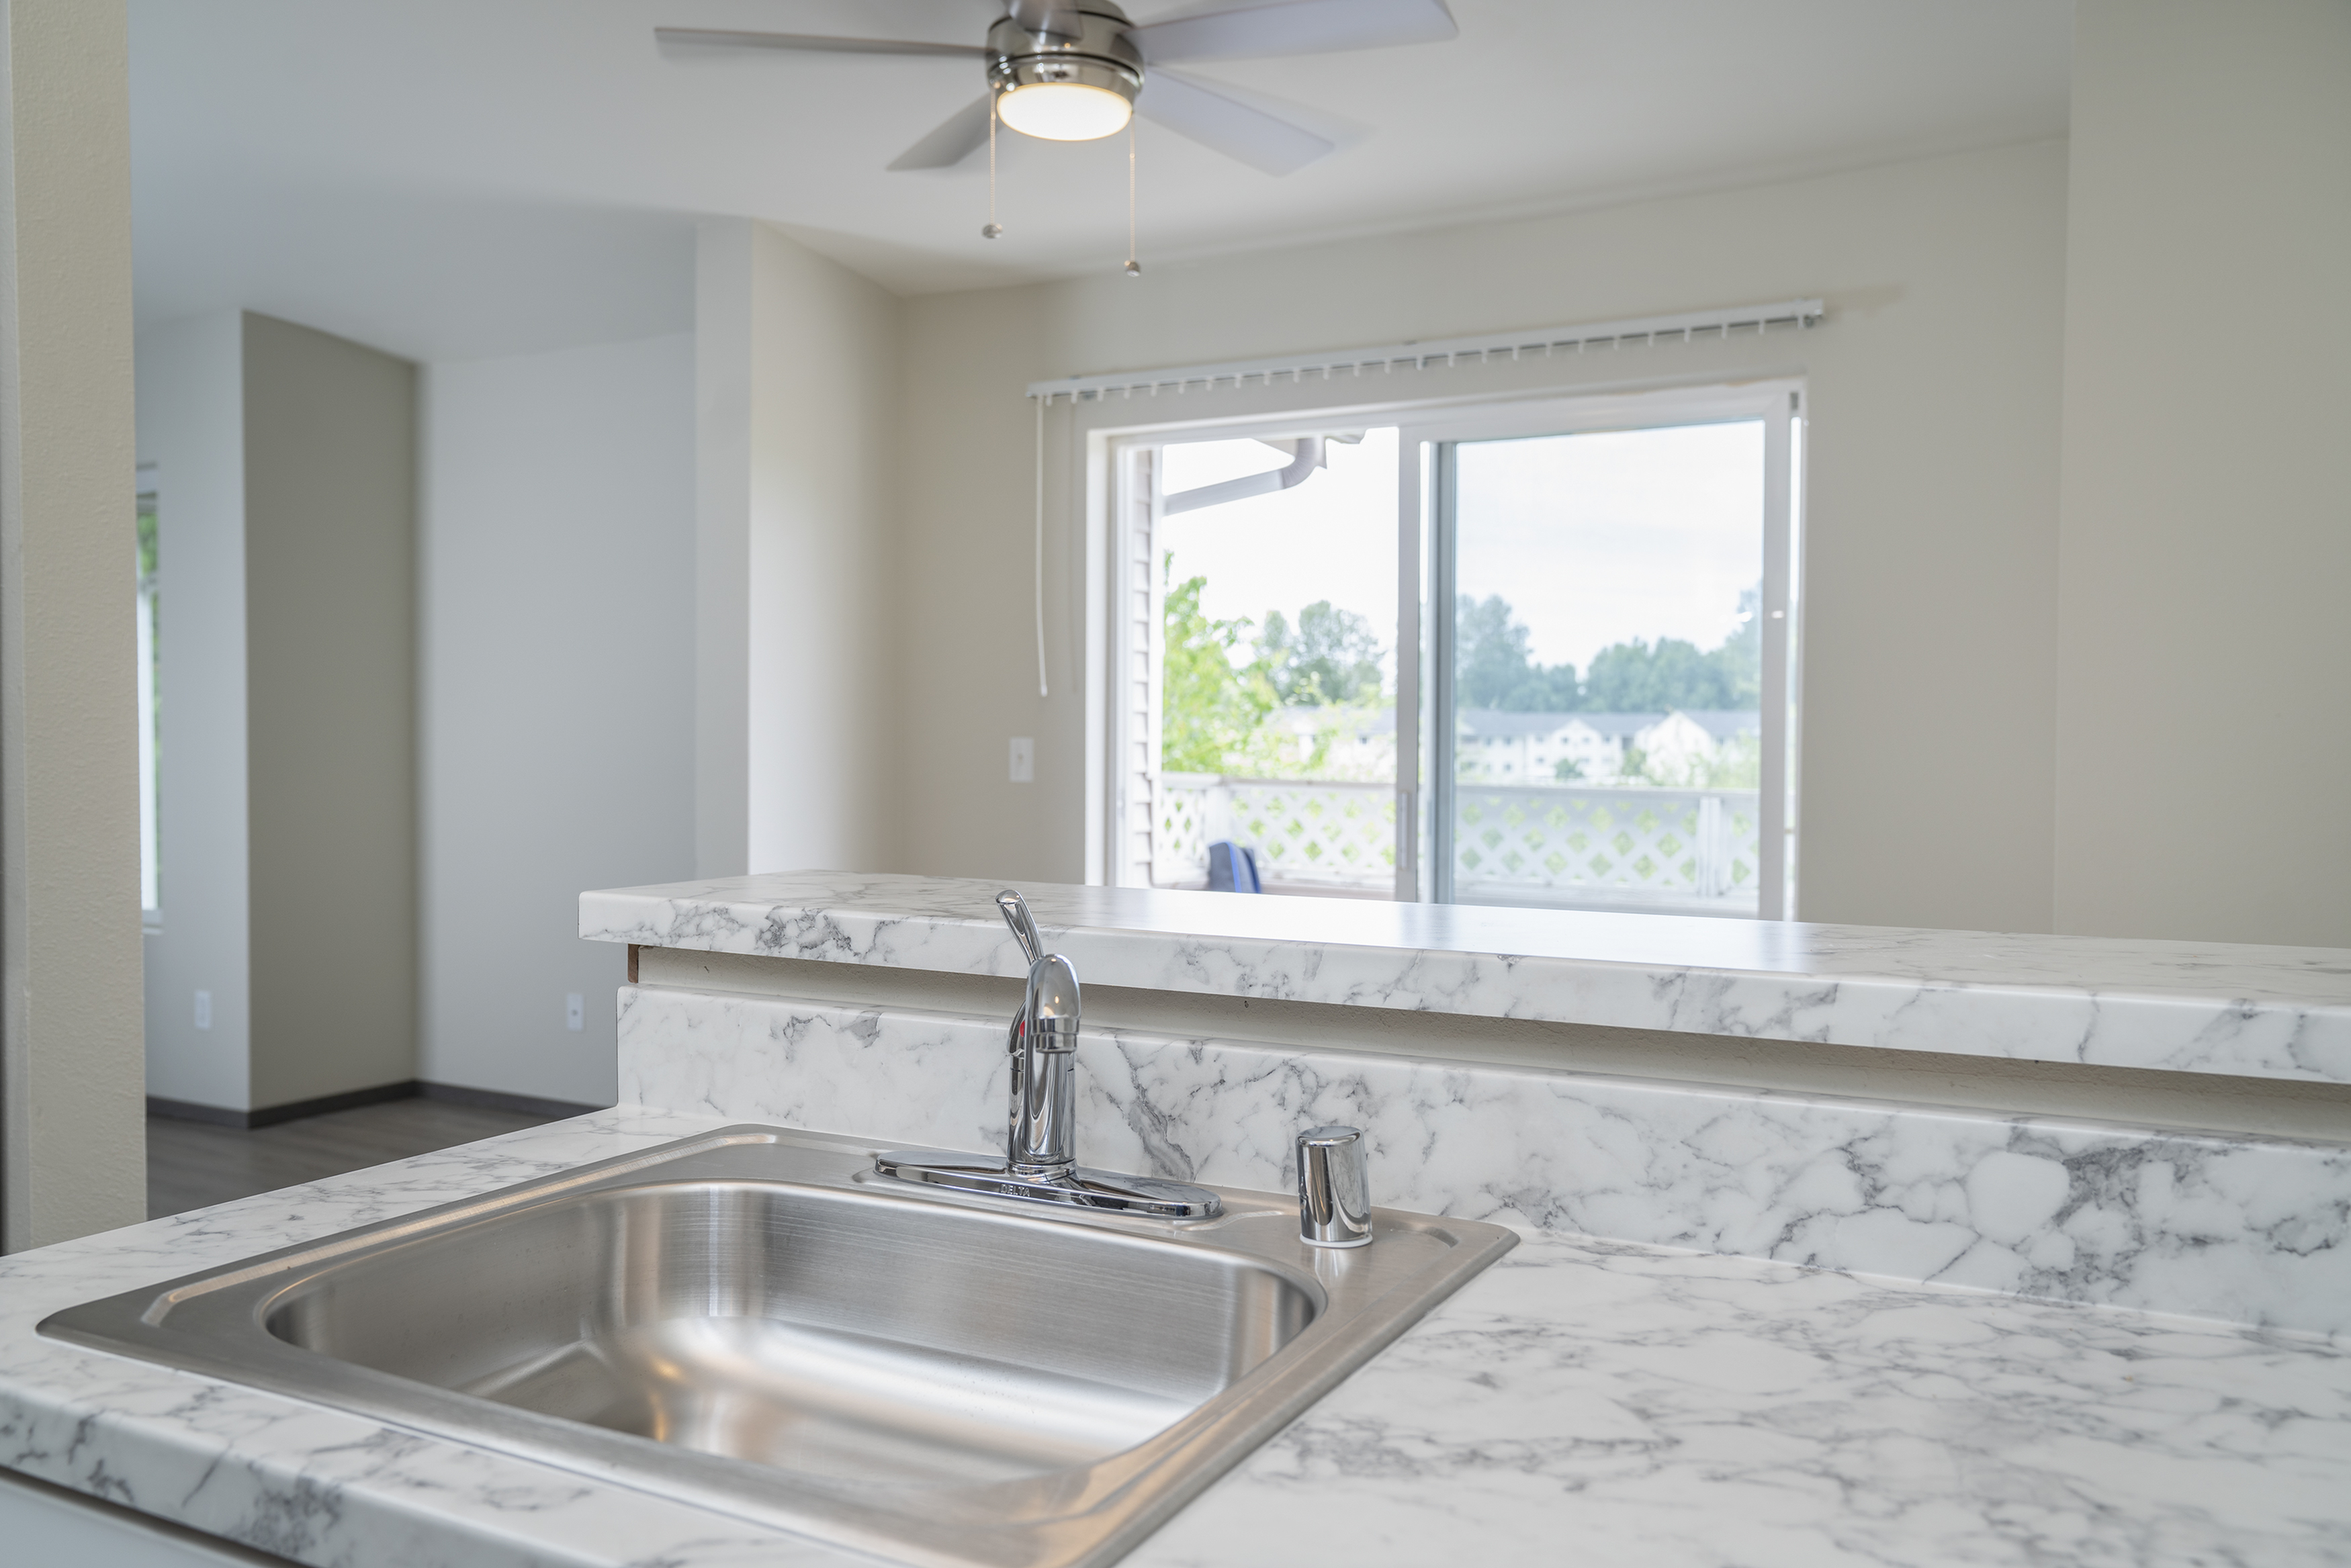 Image of Laminate Countertops with White Marble Design for Nantucket Gate